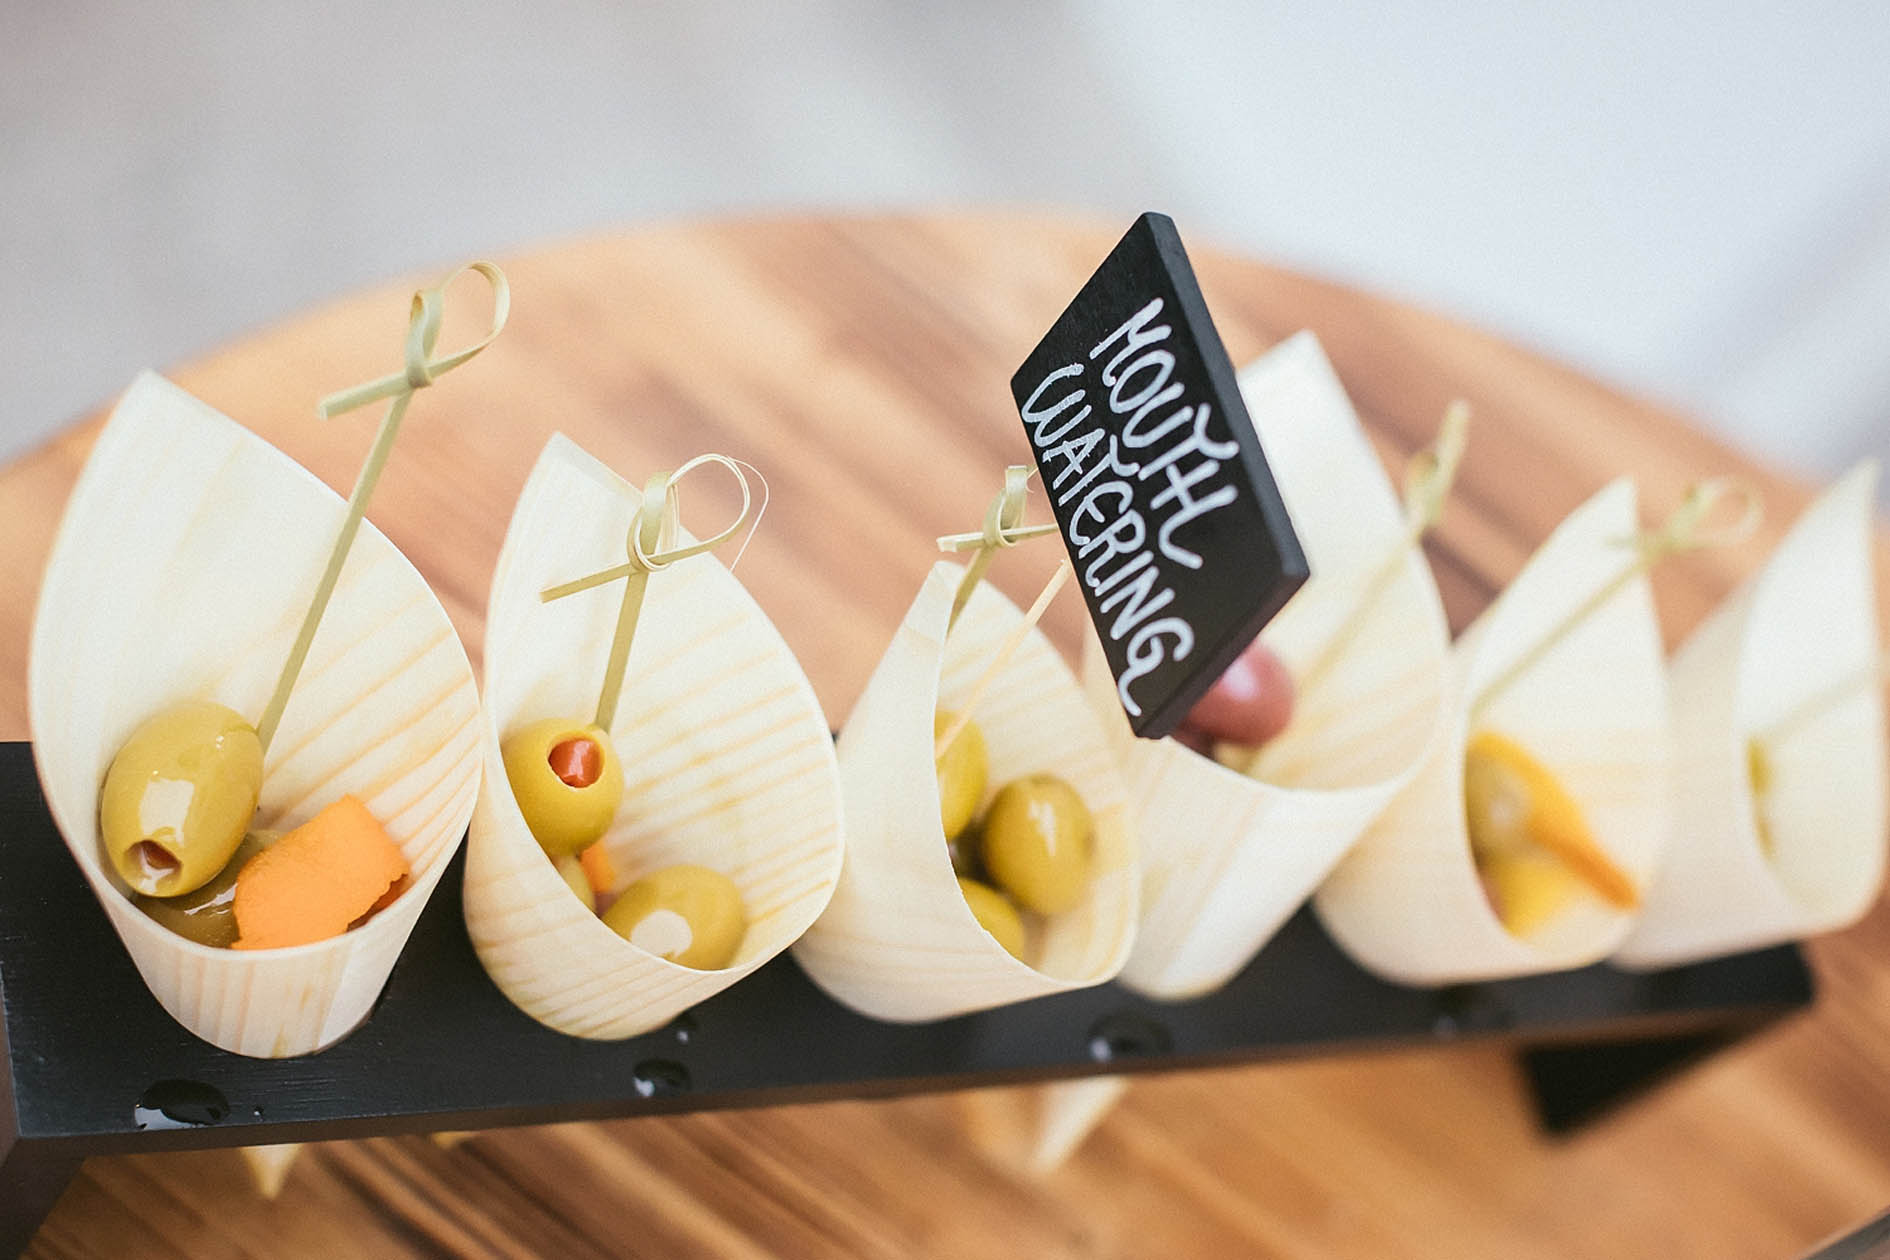 Appetizers at Union Hotels Collection in Ljubljana